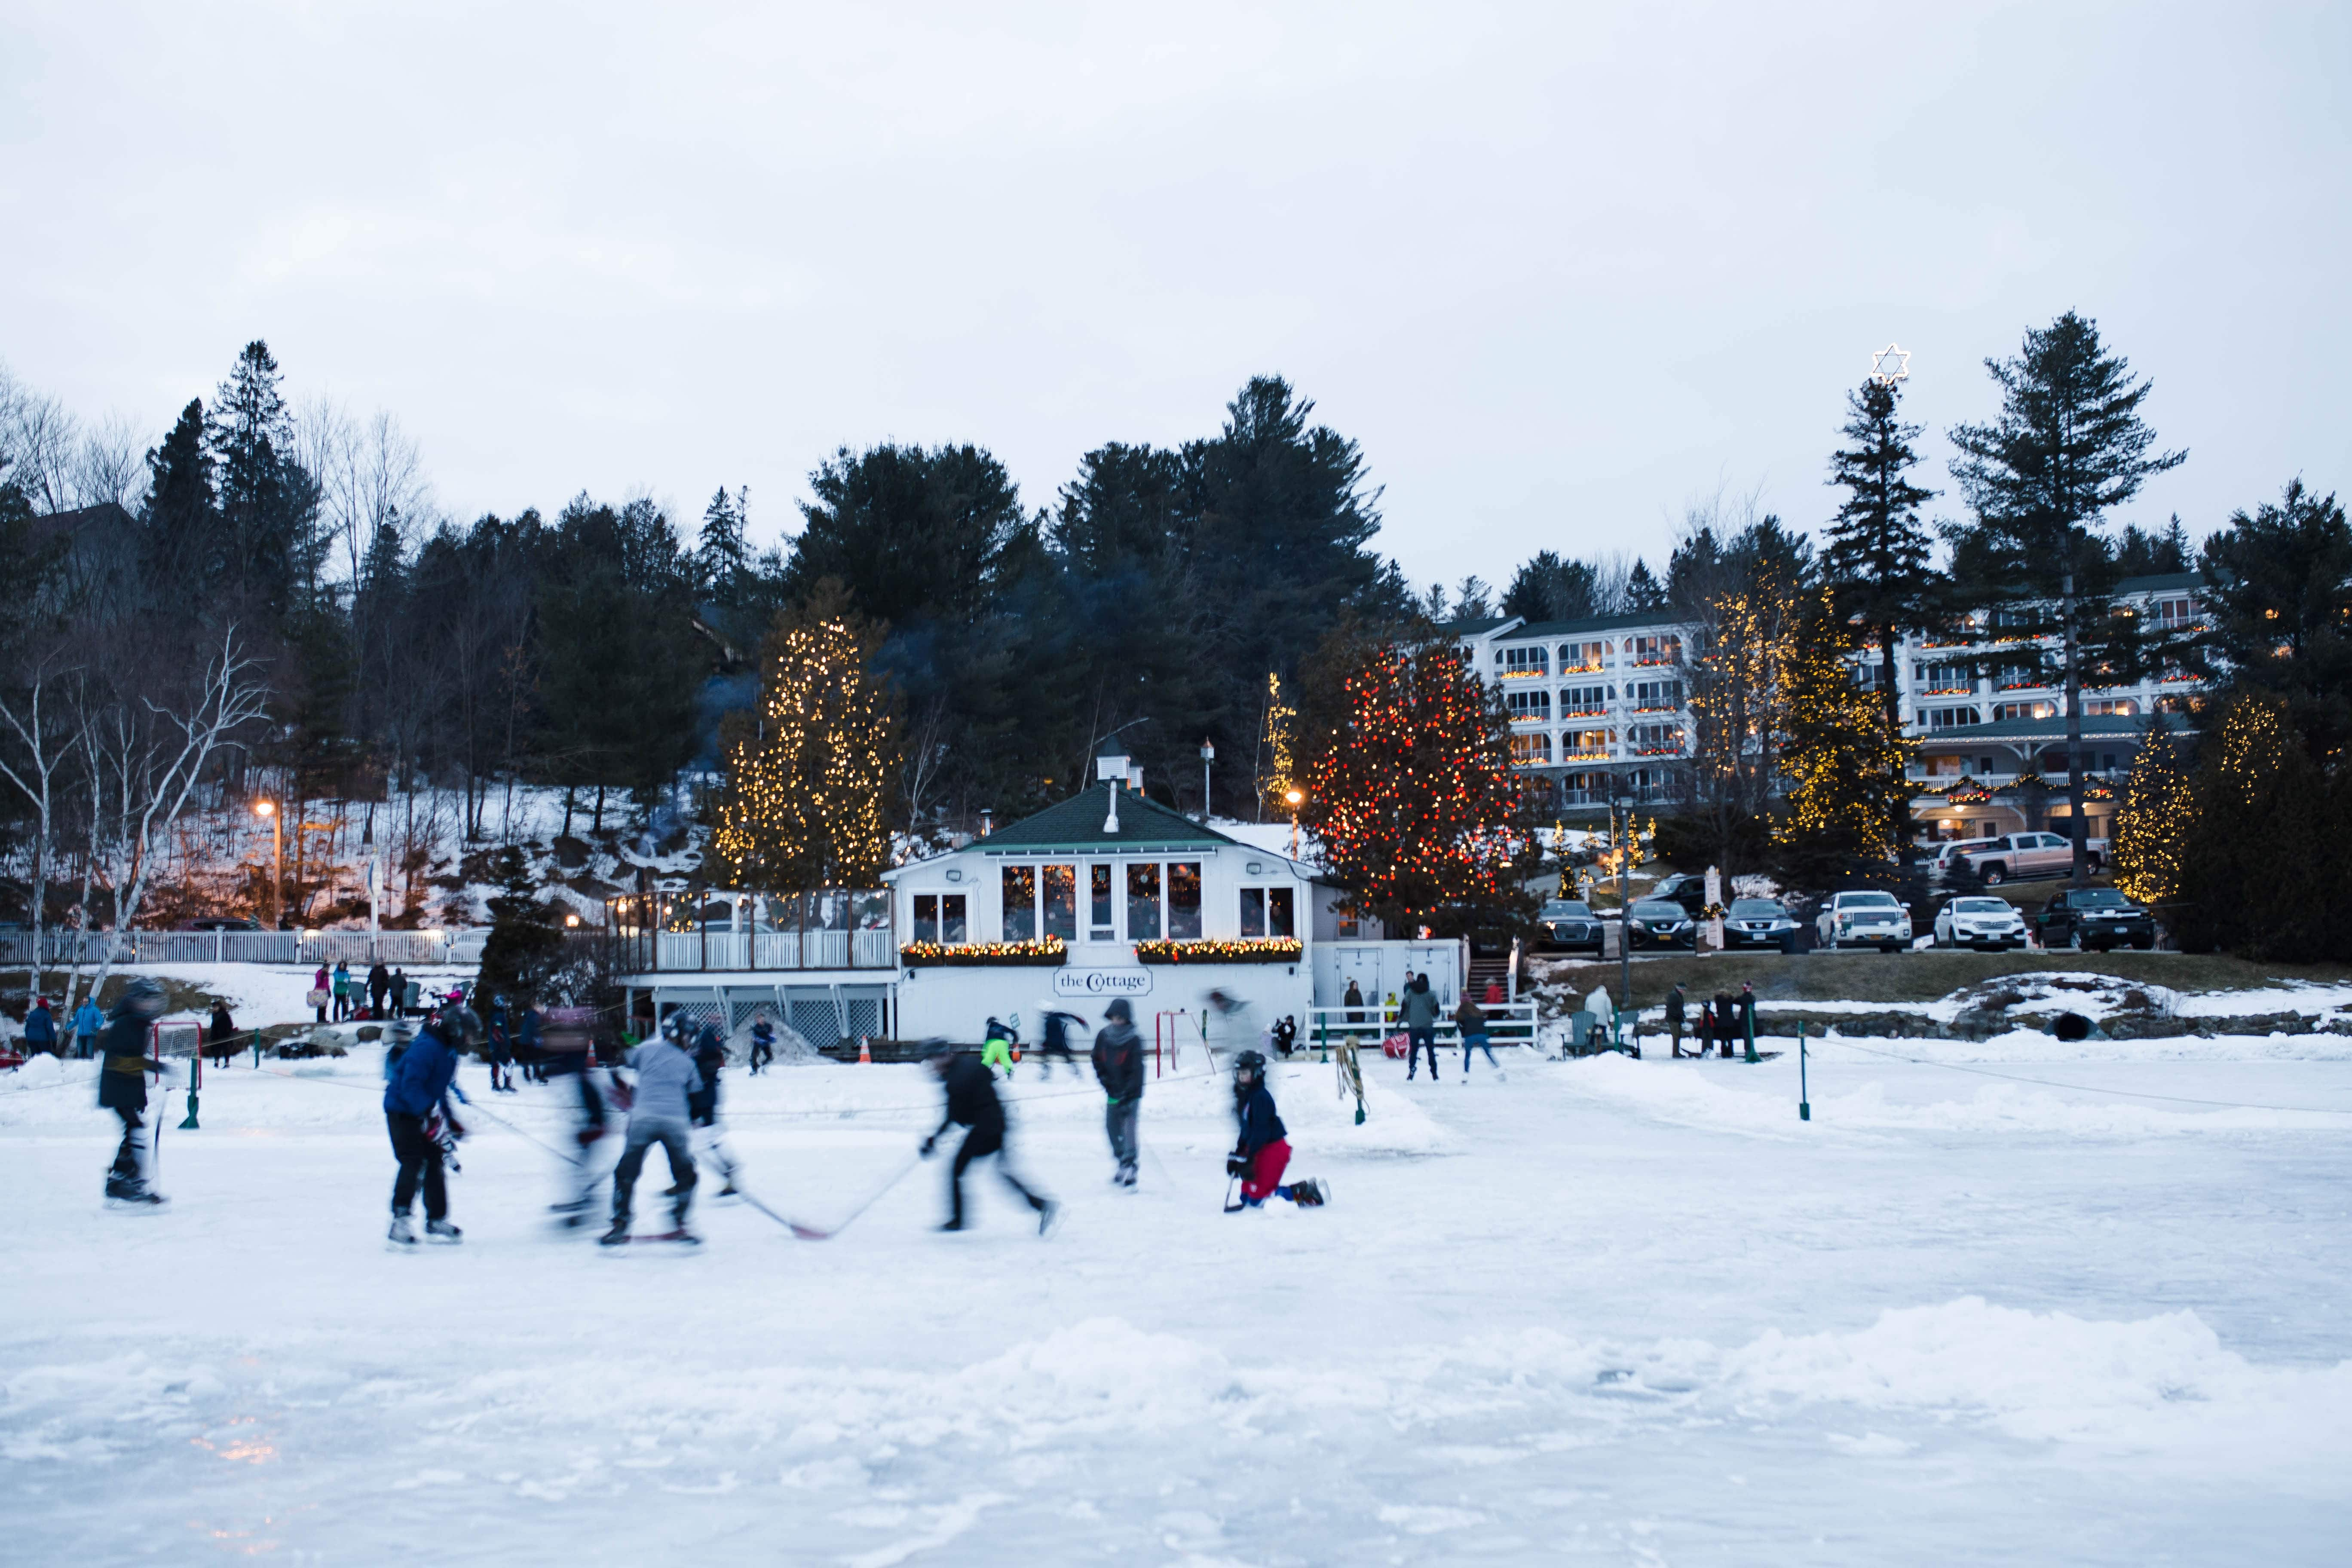 Swell The Cottage Lake Placid Styled Snapshots Download Free Architecture Designs Embacsunscenecom